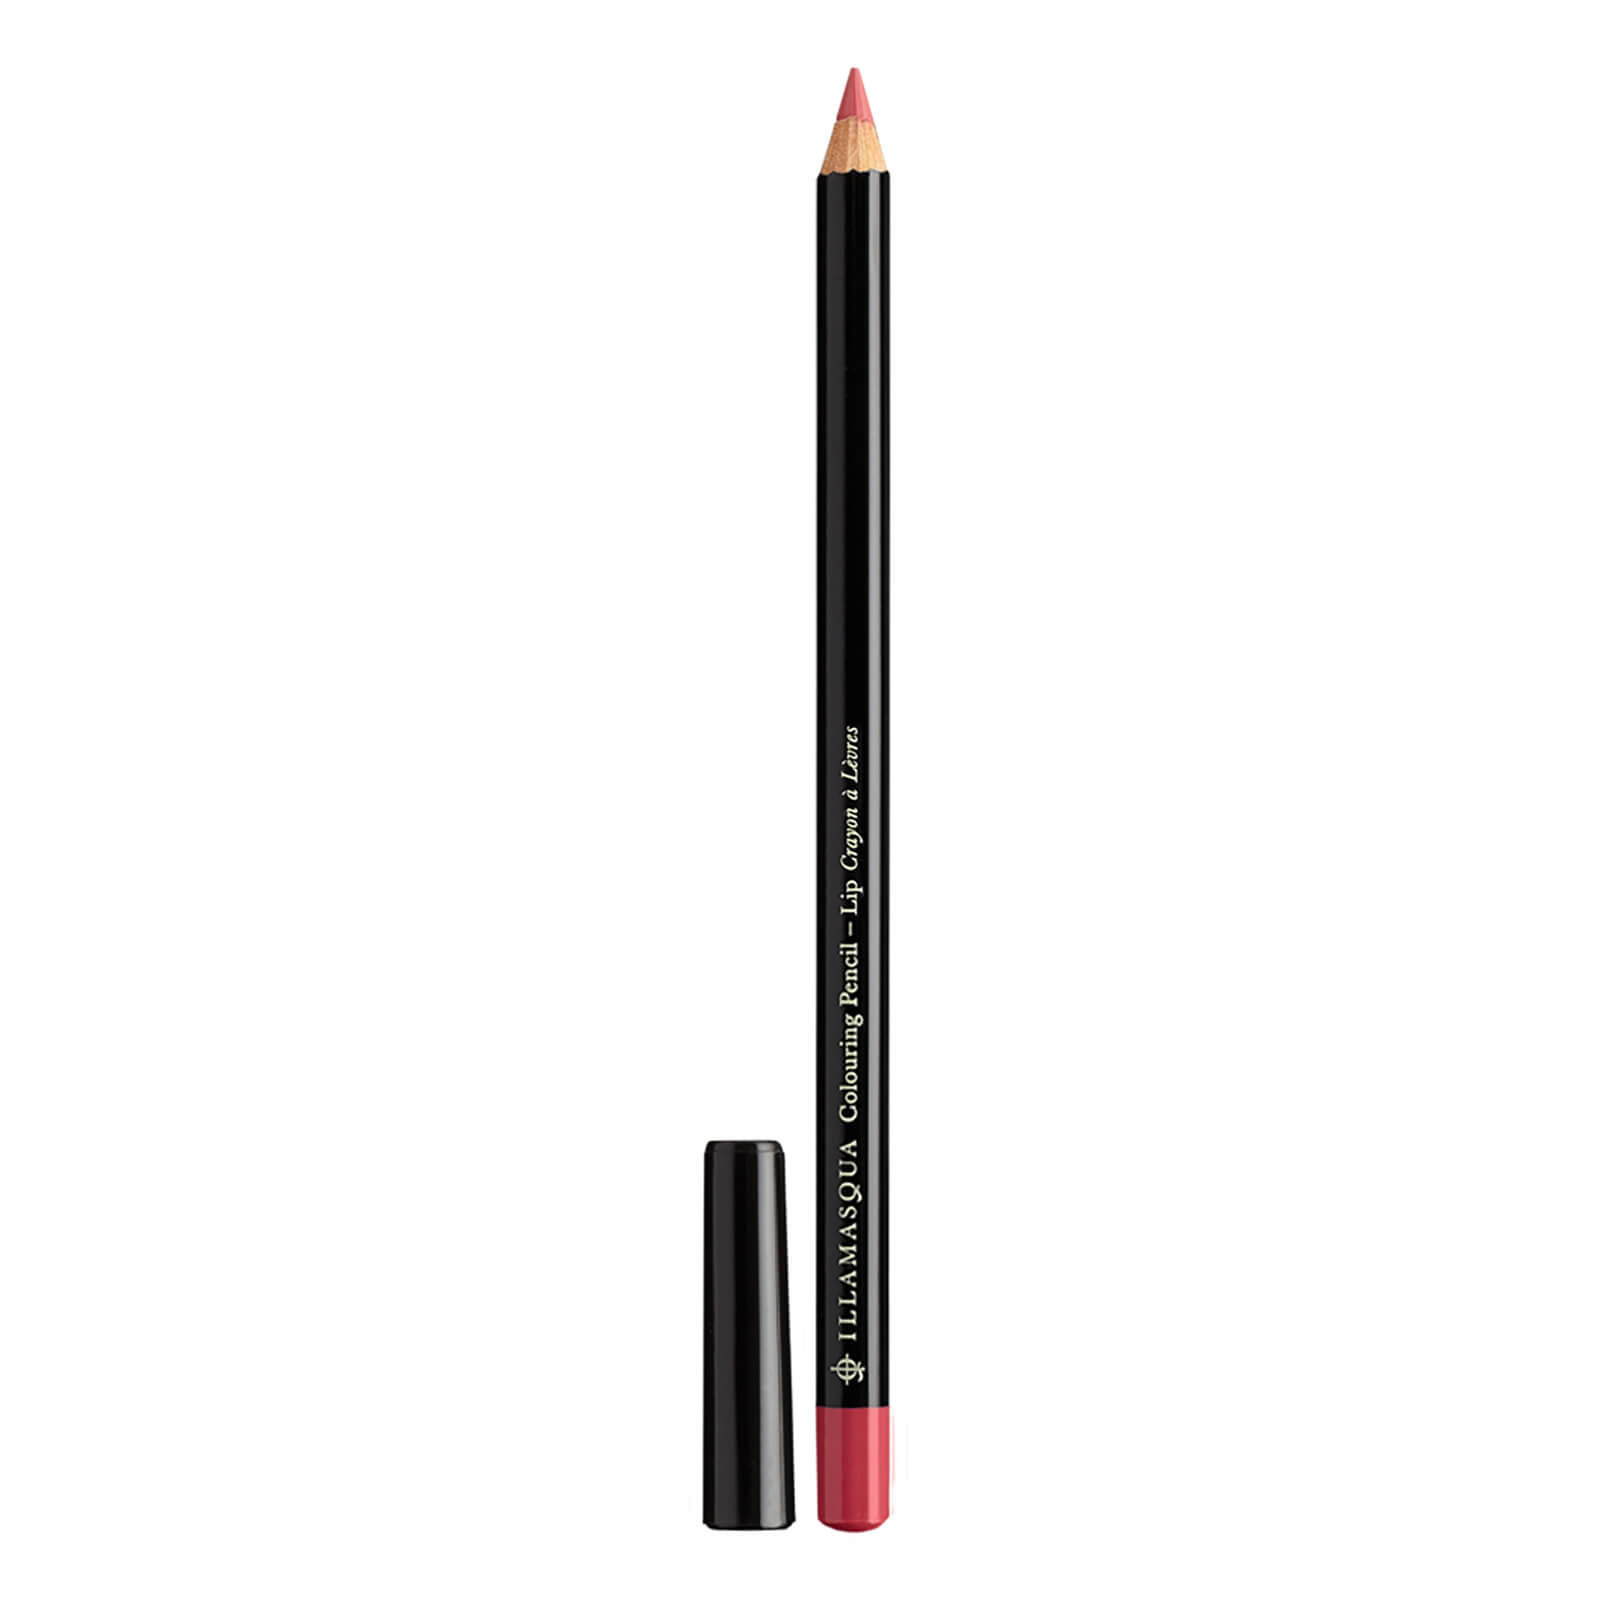 Illamasqua Colouring Lip Pencil Media